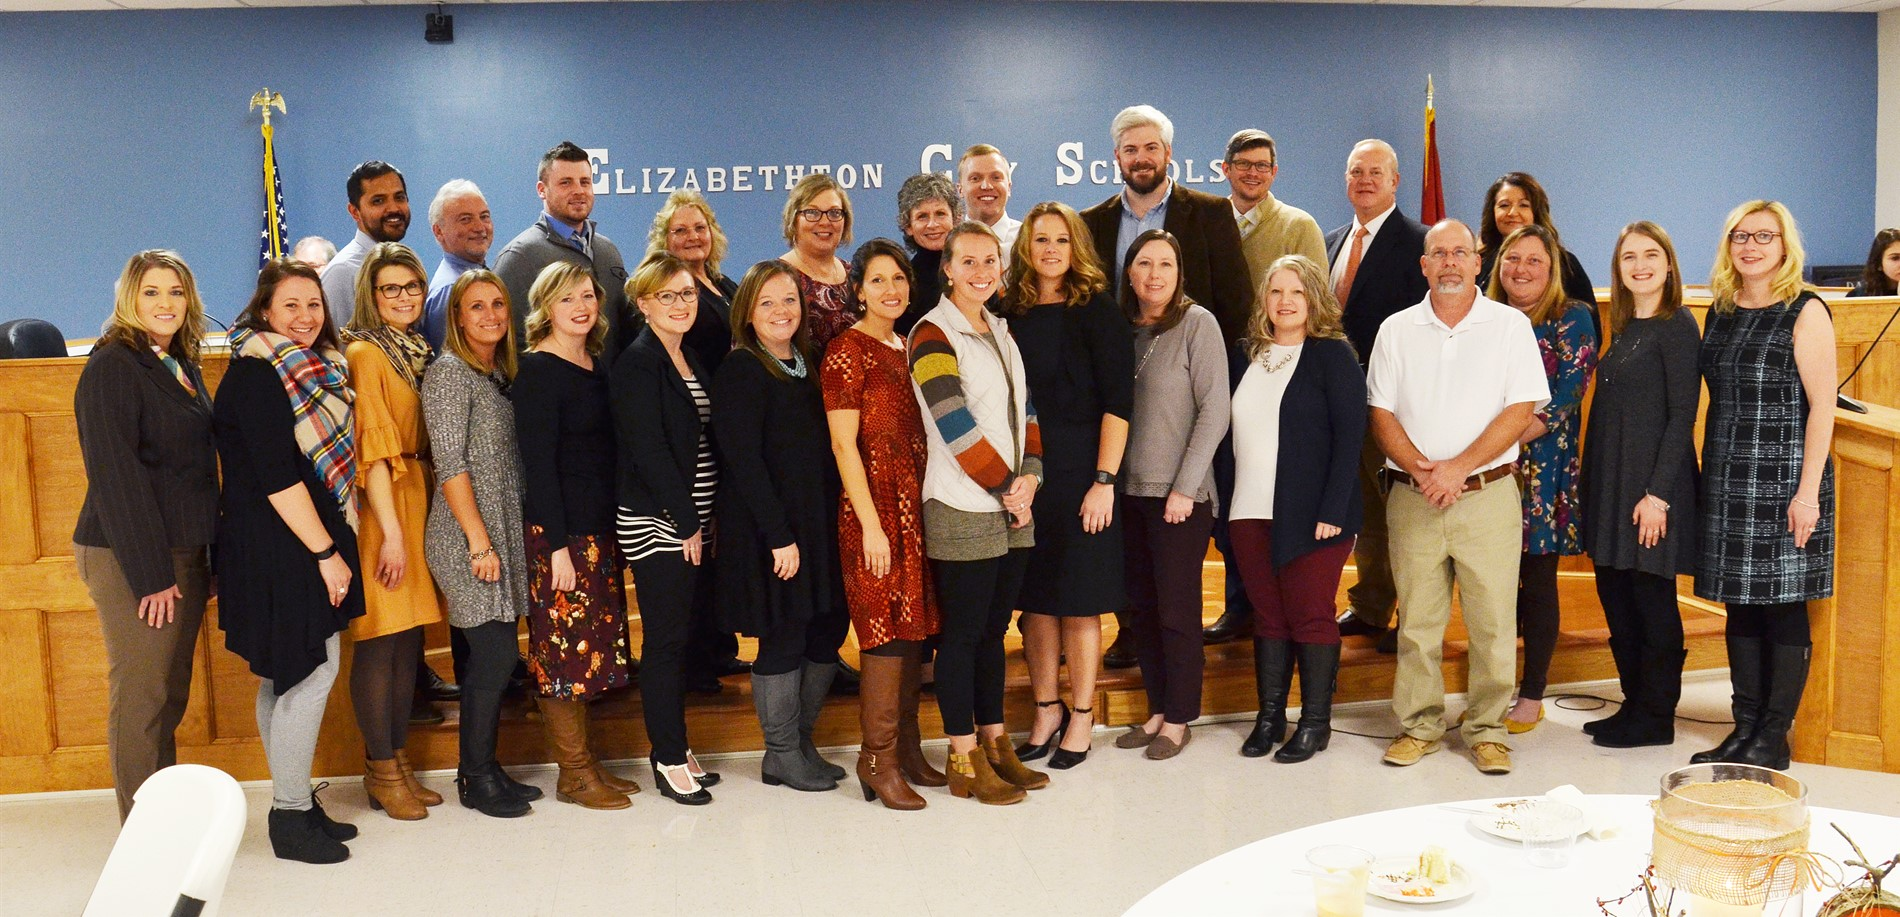 Photo of 24 tenure teachers and 3 teachers of the year.